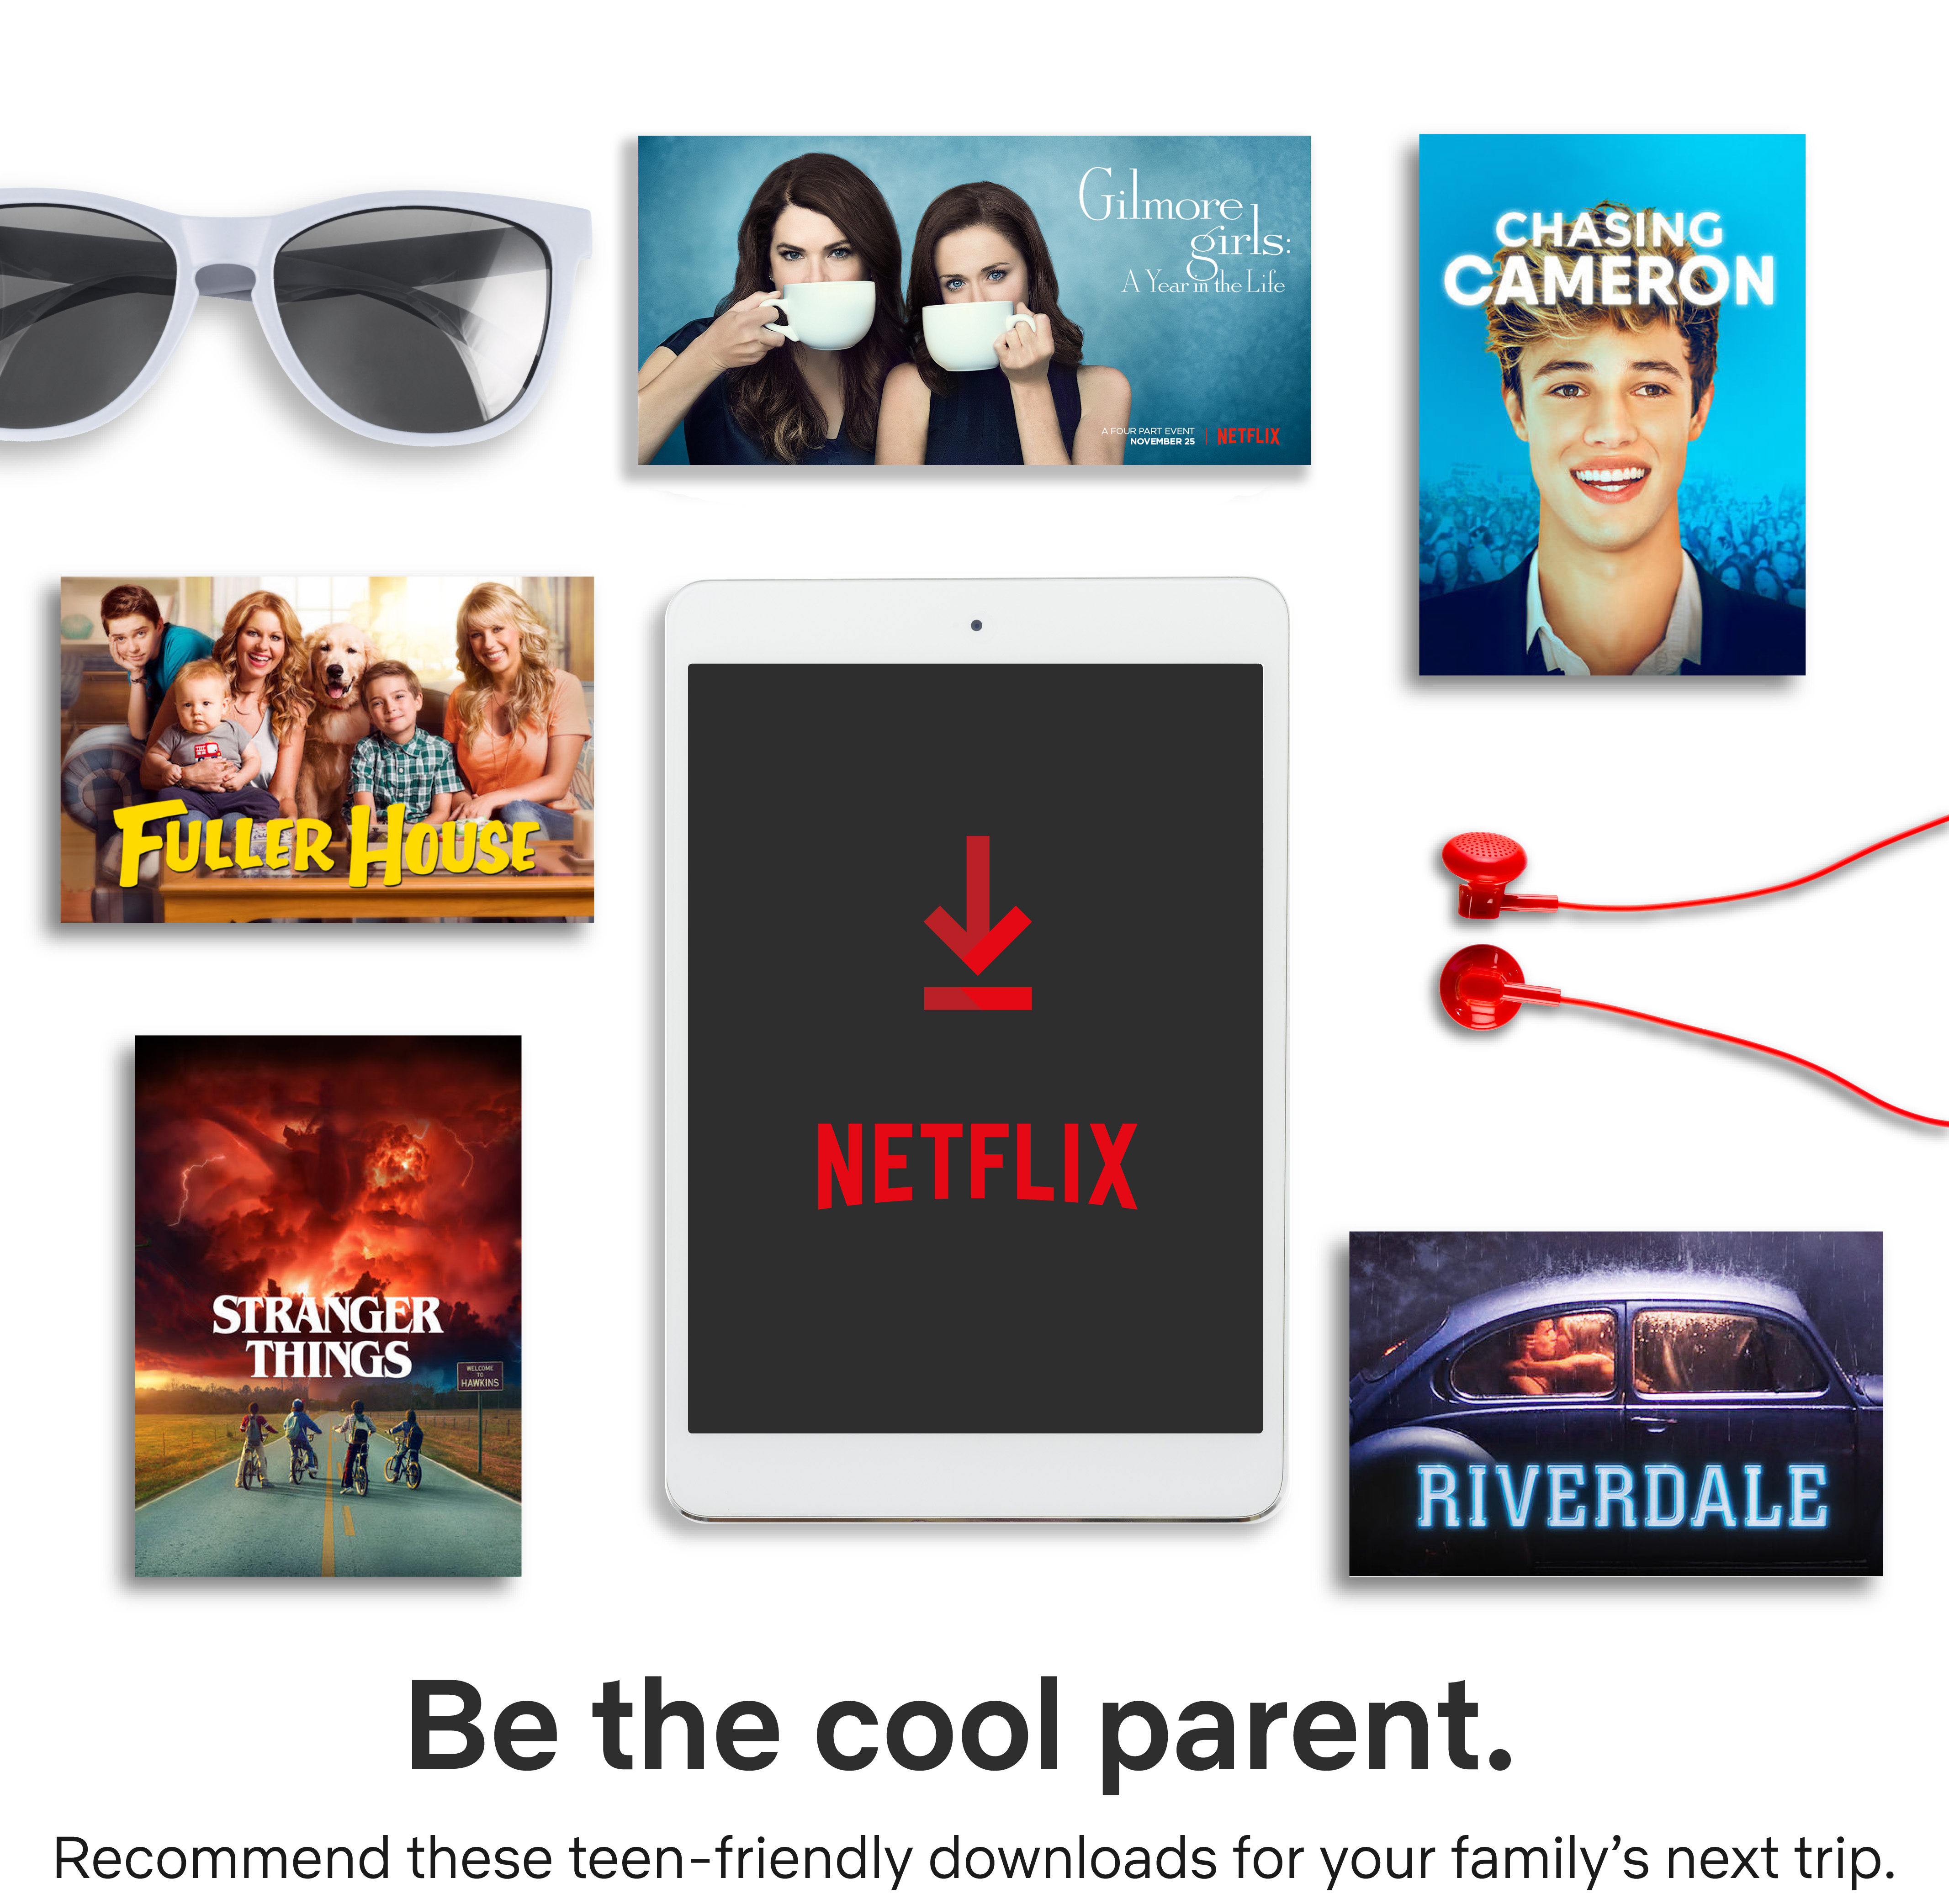 Travelling over the Holidays – Netflix Has you Covered